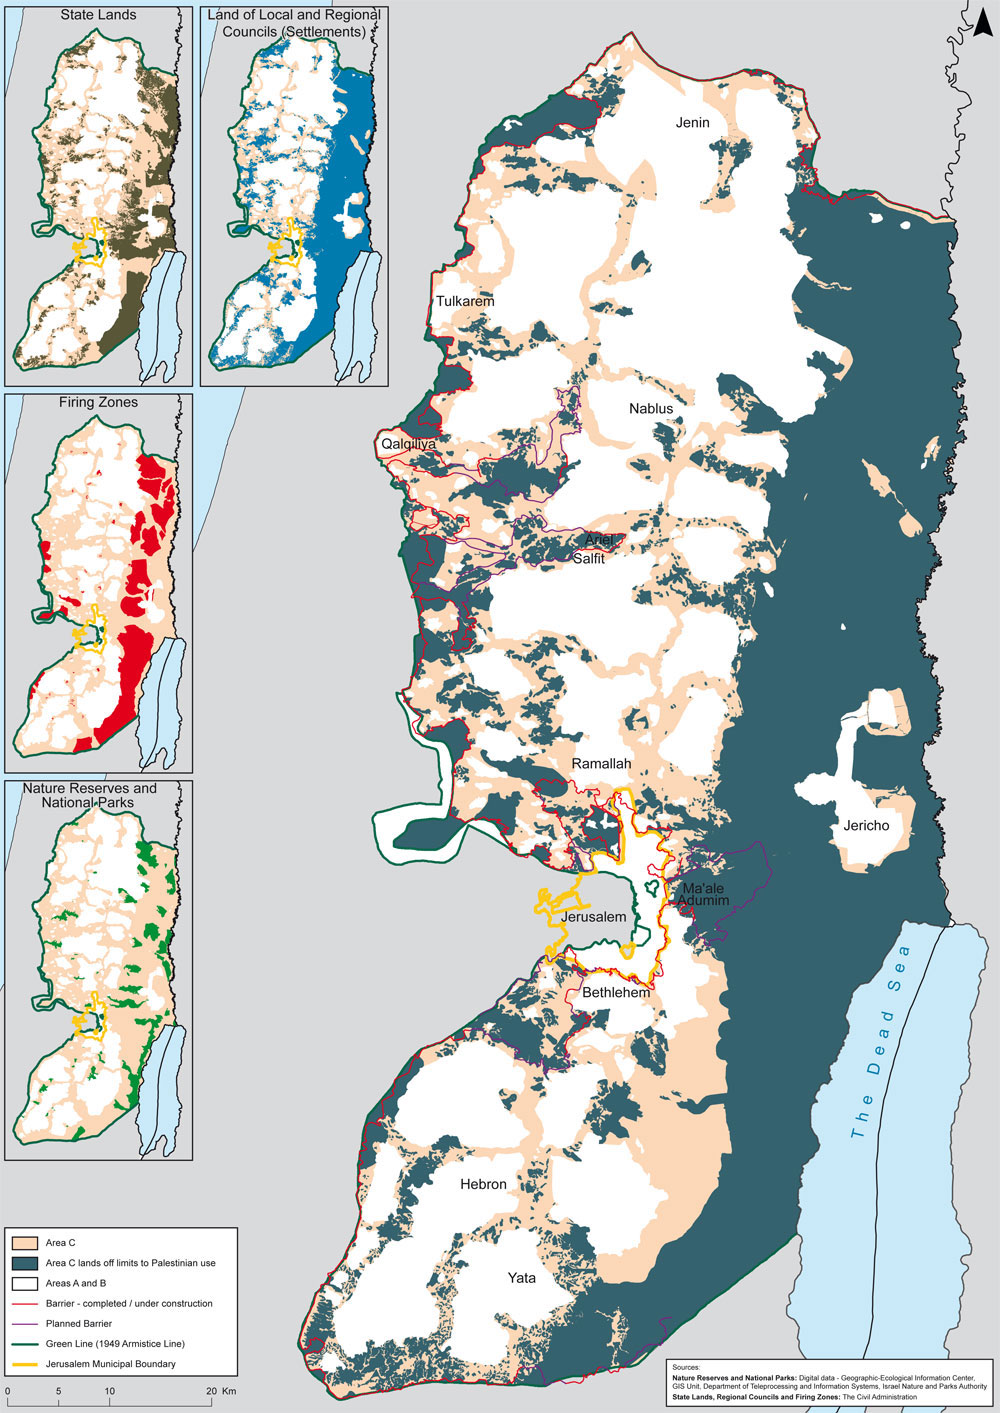 Map of the West Bank; Area C, in dark green, is controlled by Israel and makes up 60 percent of the land. Click to enlarge